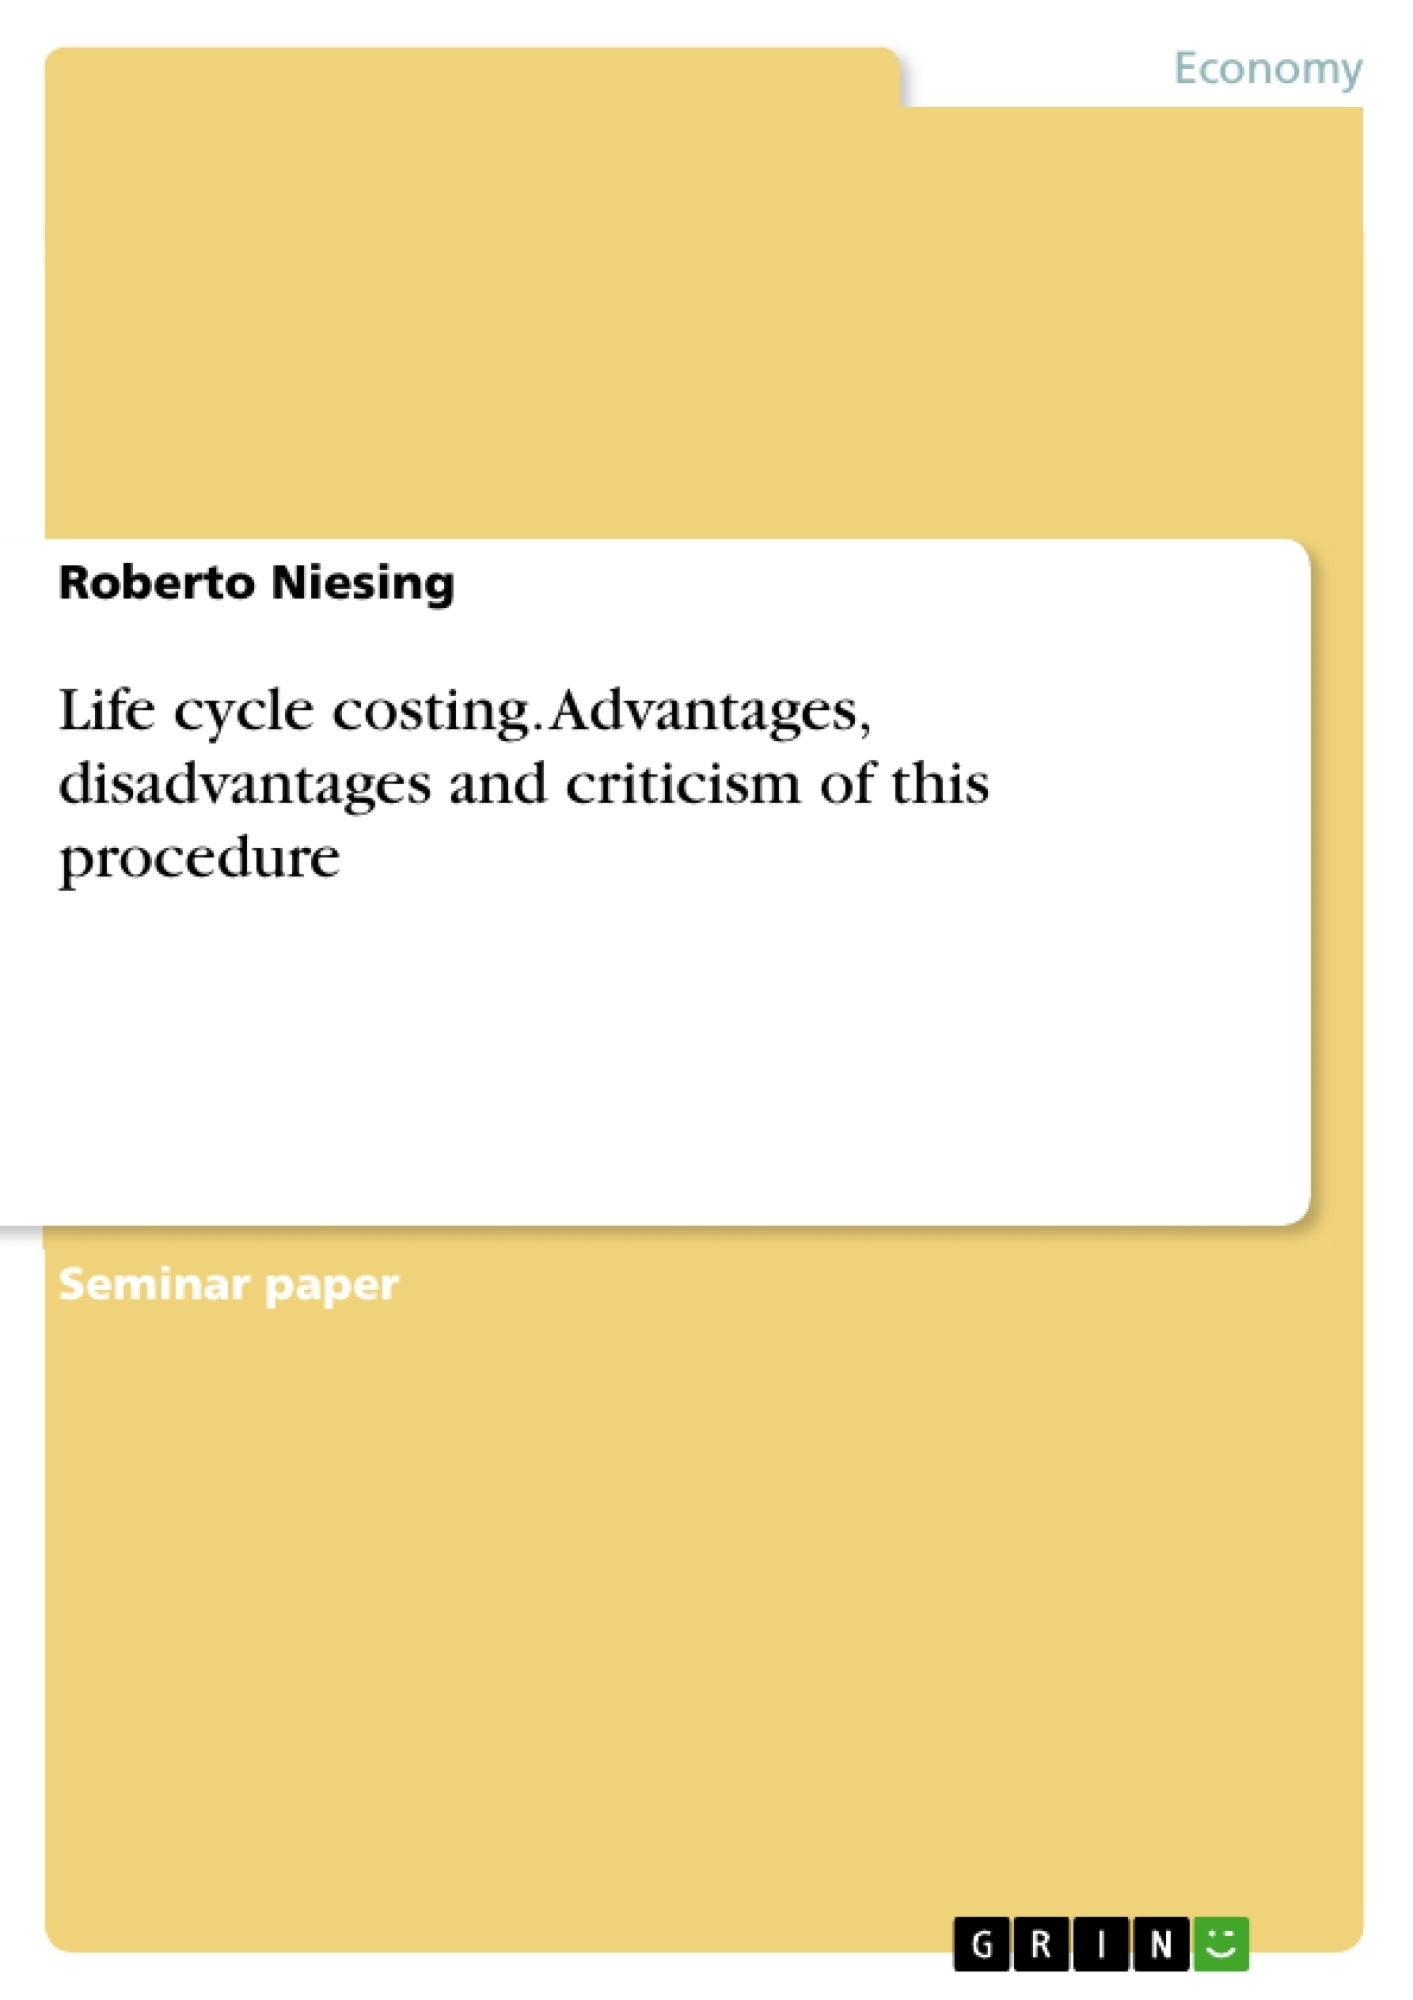 Title: Life cycle costing. Advantages, disadvantages and criticism of this procedure